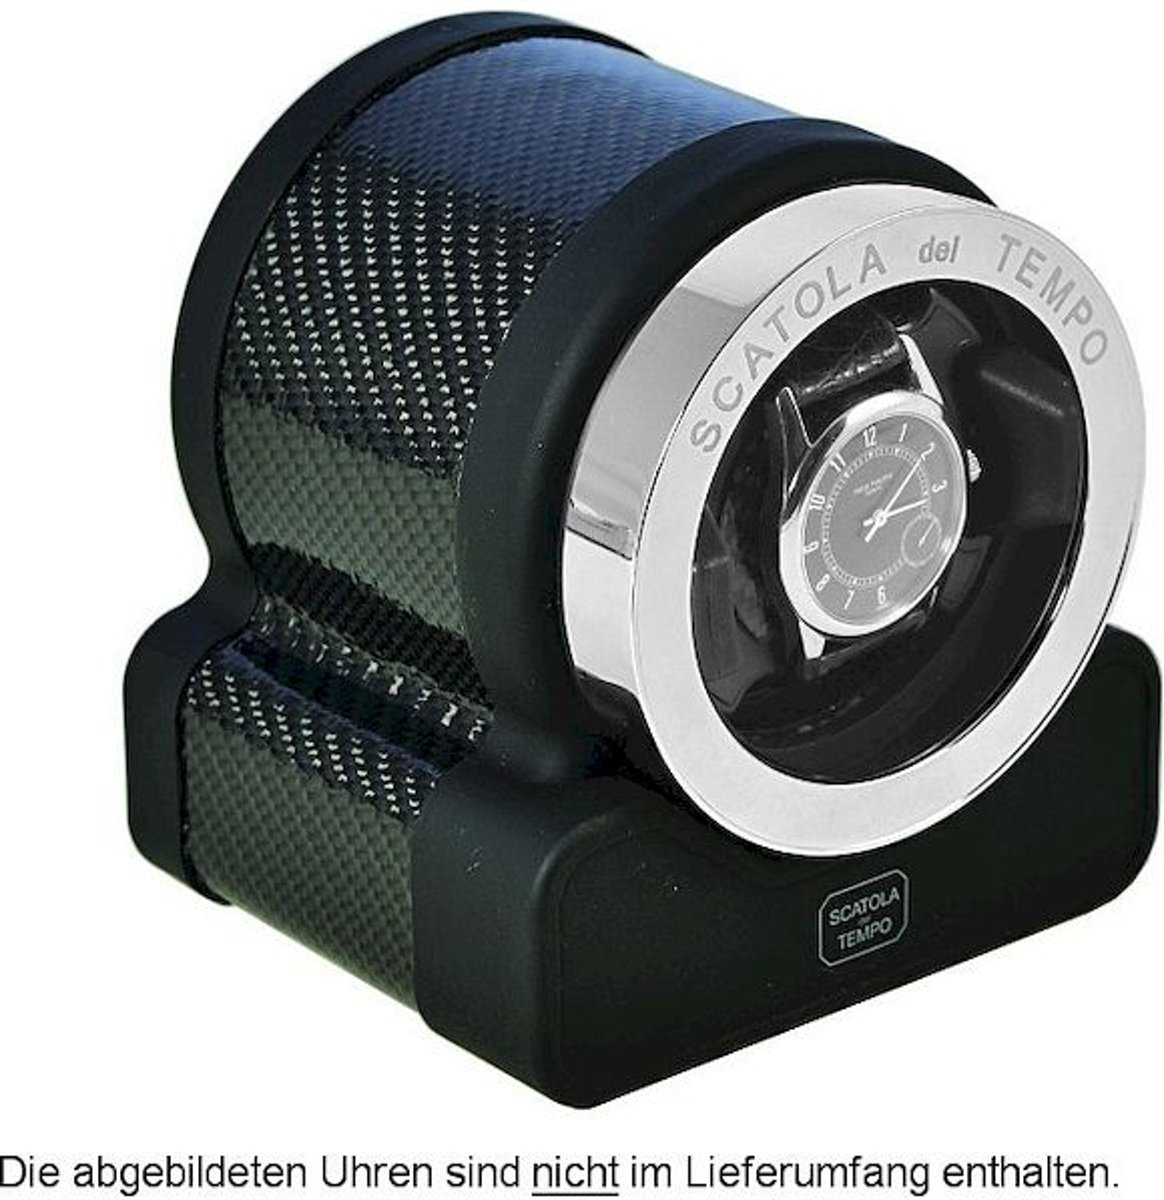 Scatola del Tempo Watchwinder Rotor One HdG Carbon kopen